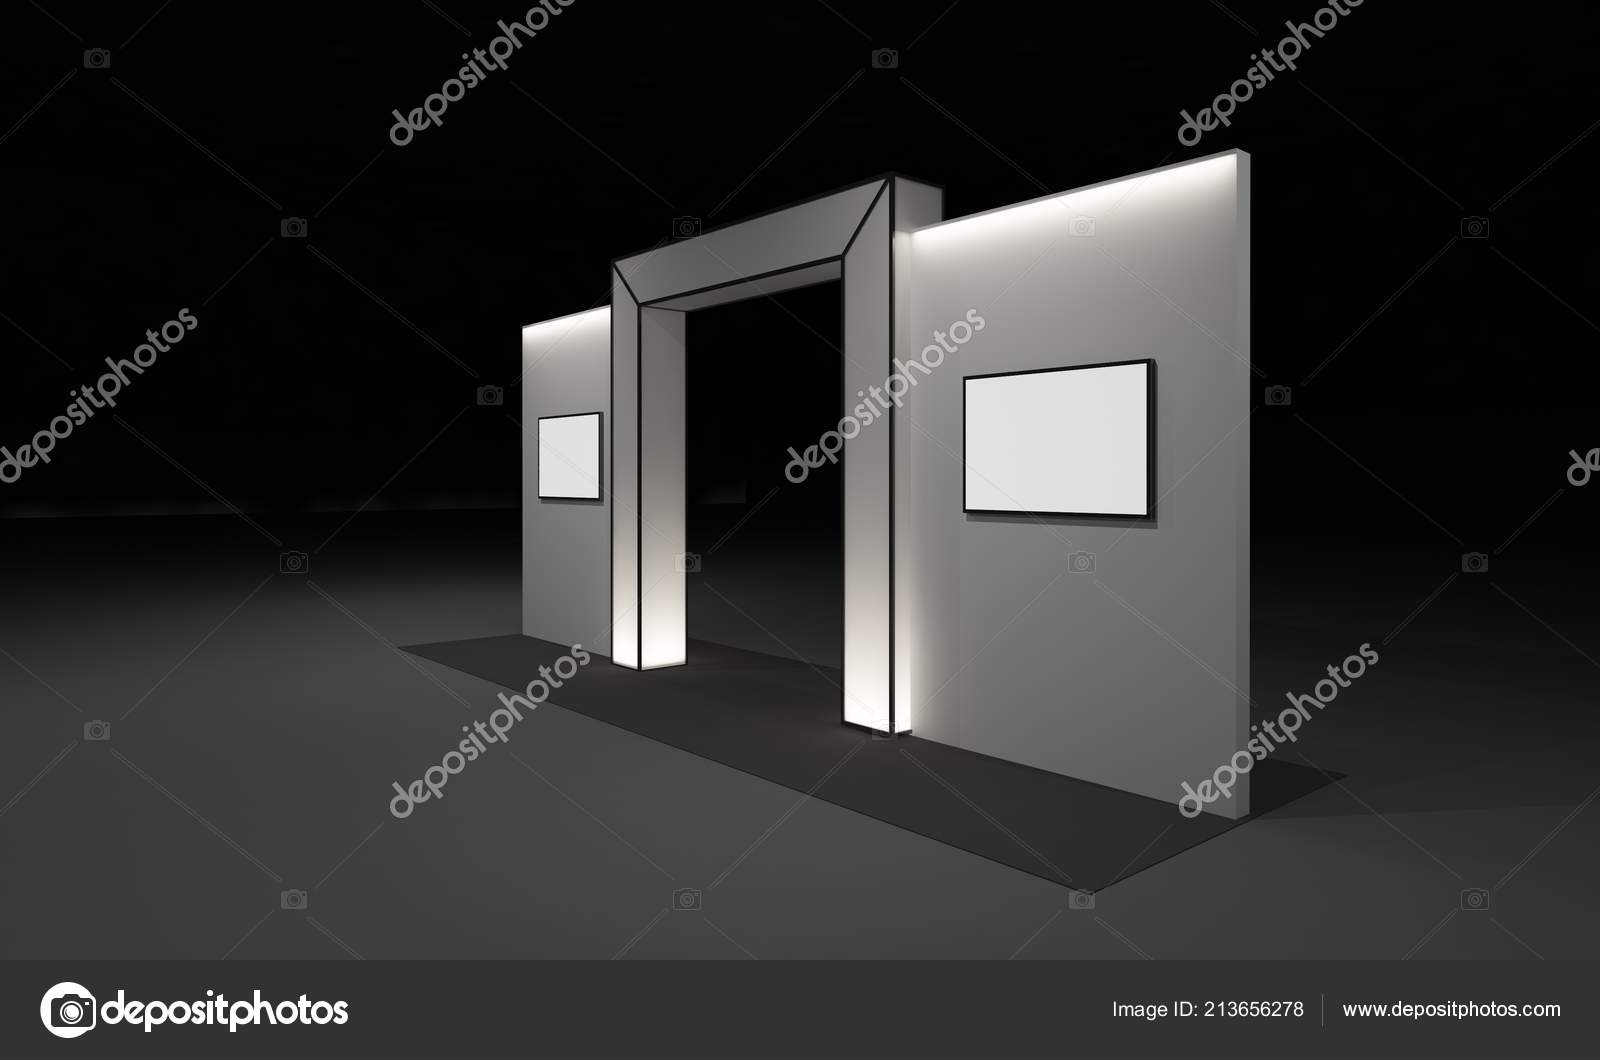 Exhibition Booth Design Concept : Rendering gate entrance booth exhibition design concept interior